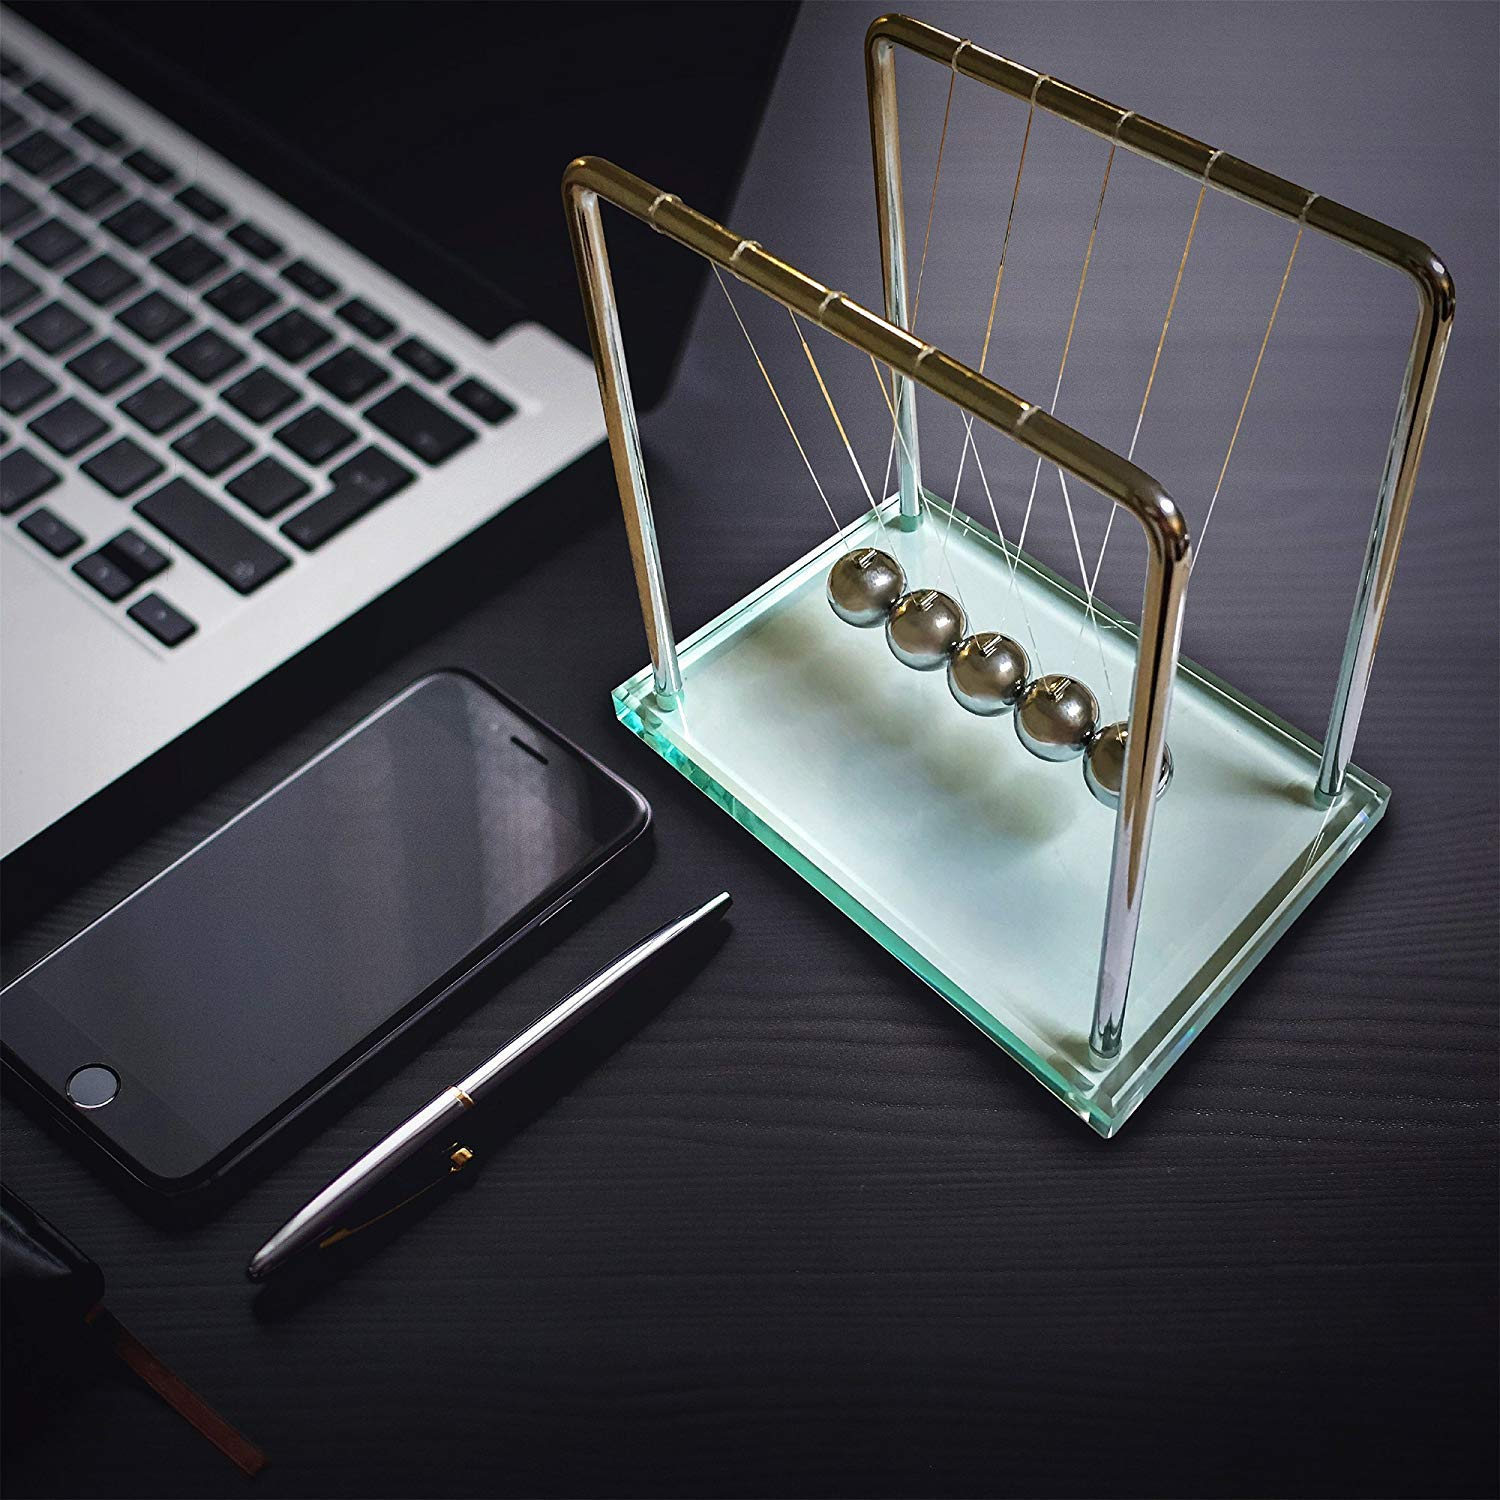 FAXADELLA GlassCradle Newtons Cradle with Luxury Glass Base - Stainless Steel Balls